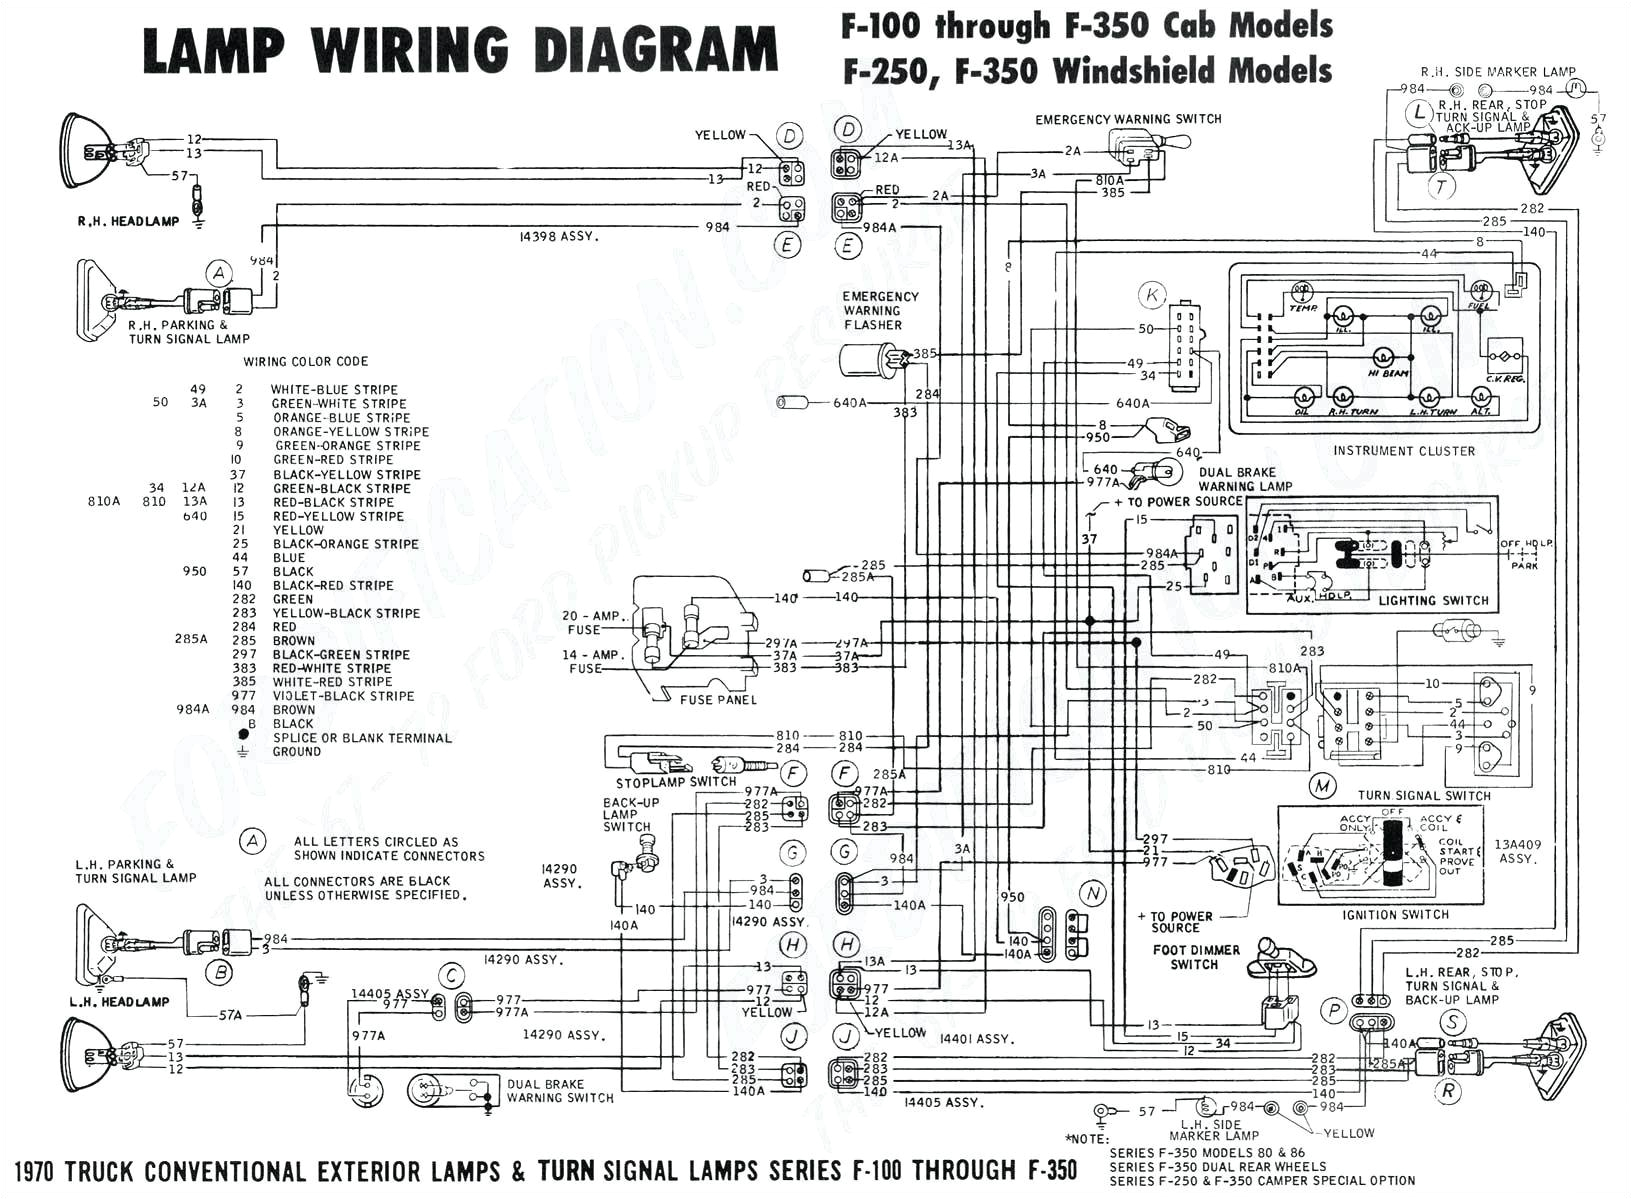 wiring diagram furthermore wiring with 12 3 wire likewise how to basic circuit diagram symbols likewise